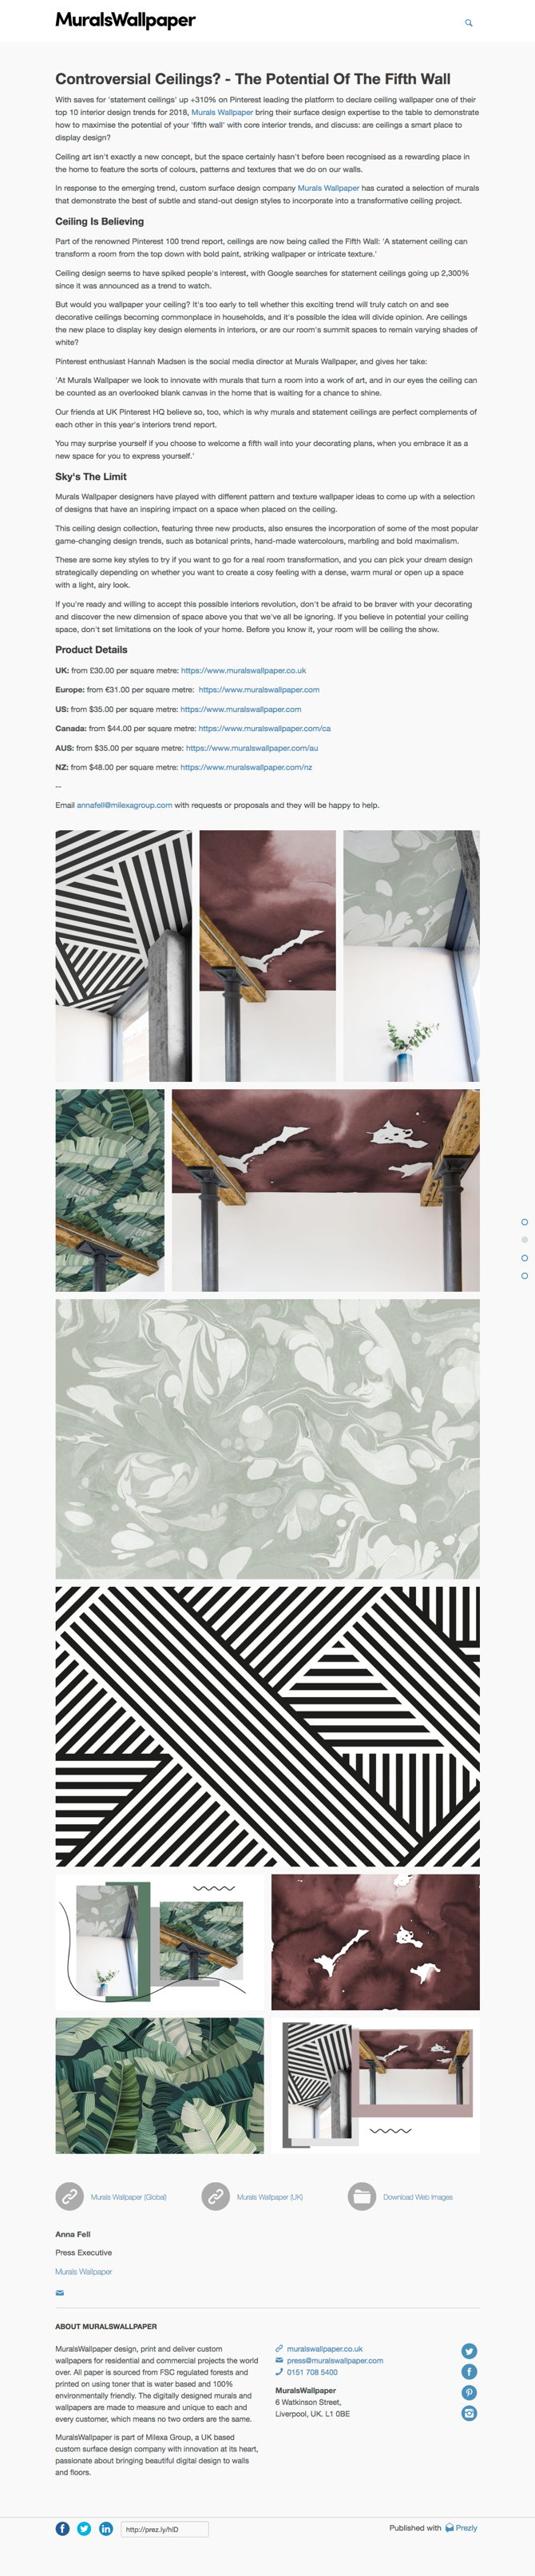 Controversial Ceilings? - Murals Wallpaper On The Potential Of The Fifth Wall